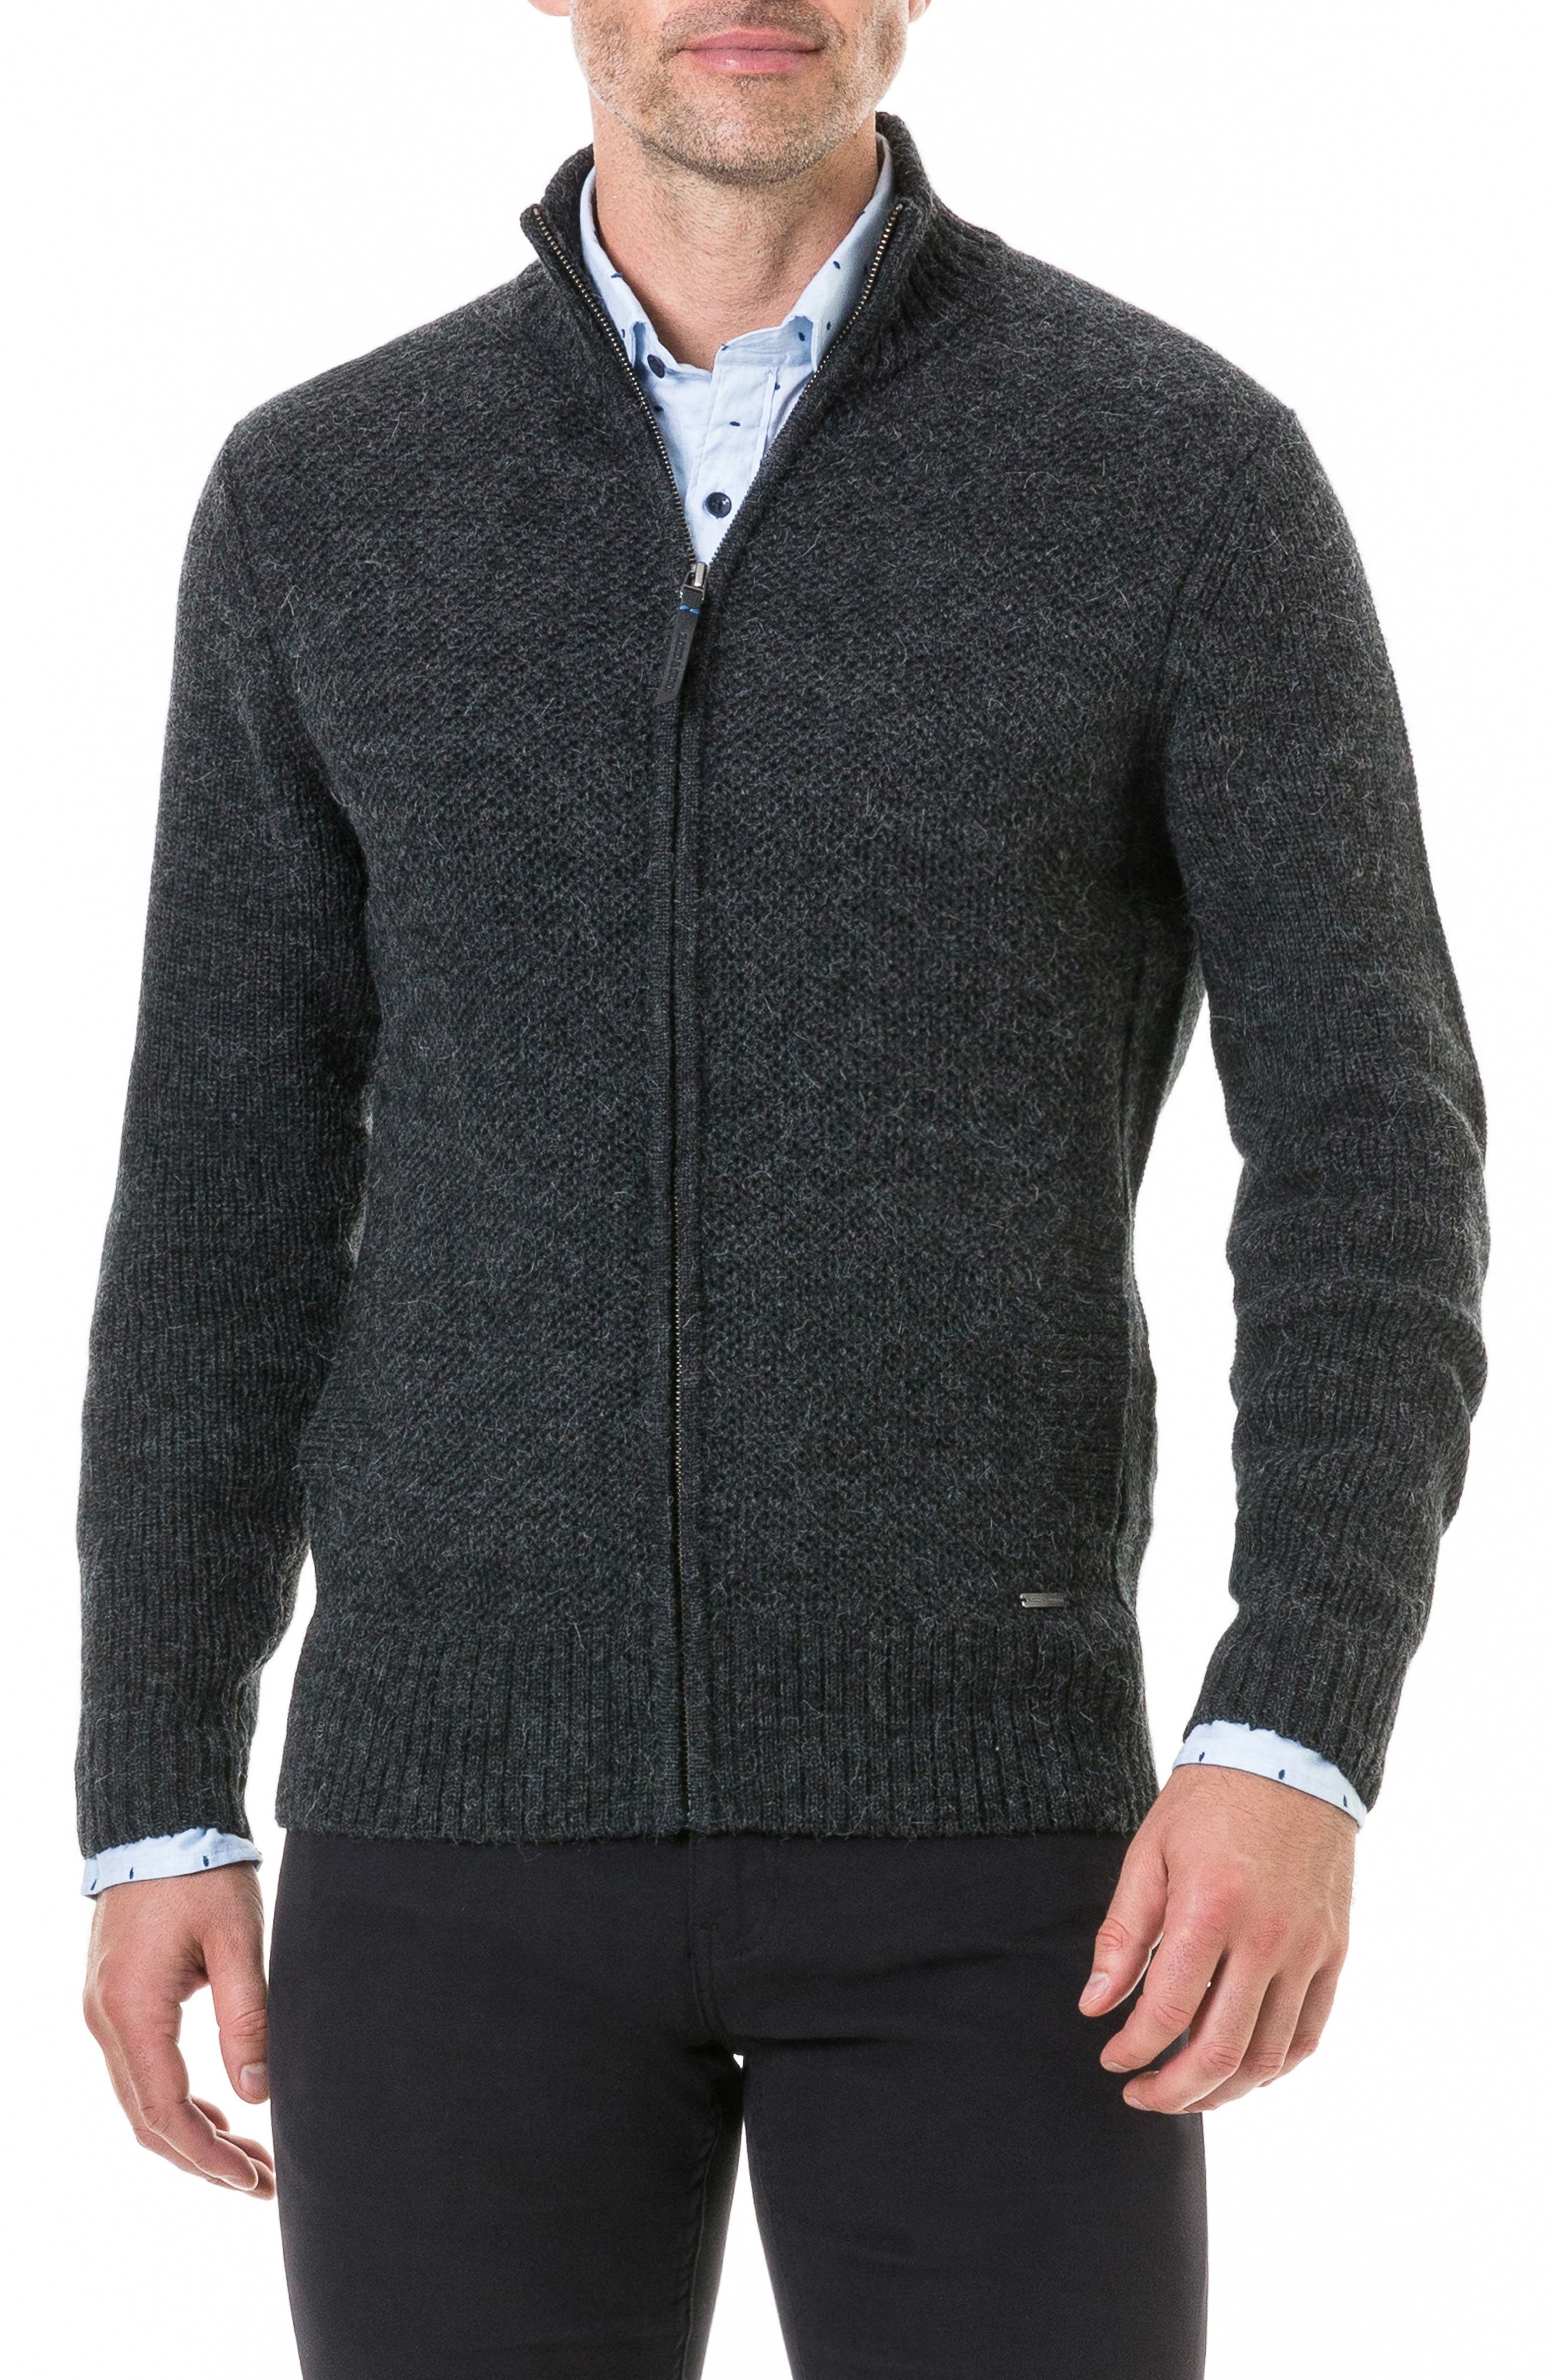 Bendrose Wool Blend Zip Cardigan,                             Main thumbnail 1, color,                             CHARCOAL